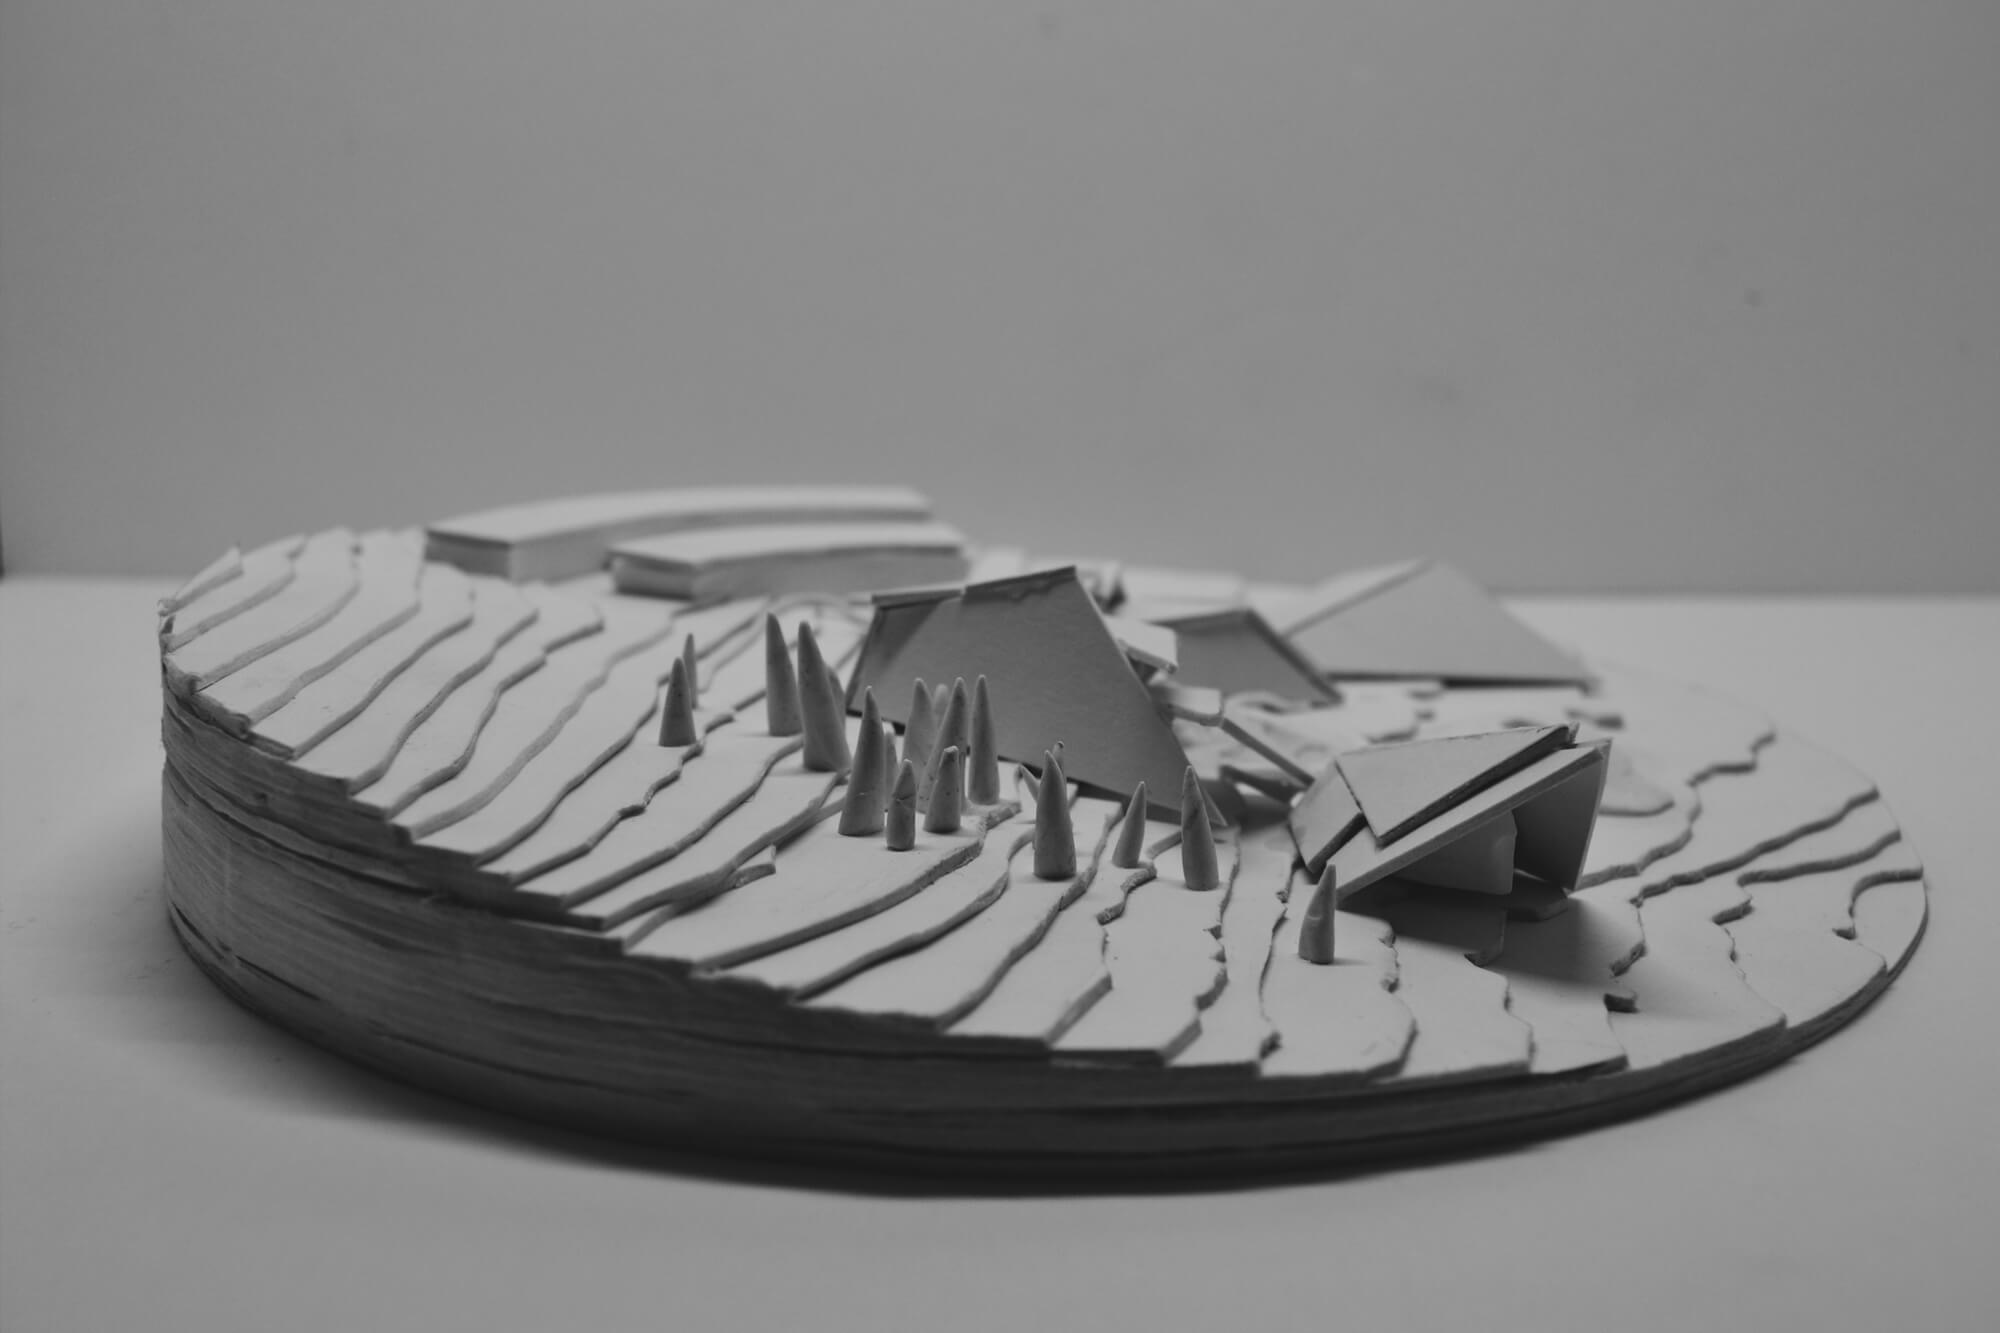 An architectural model from the Peak Gateway project.